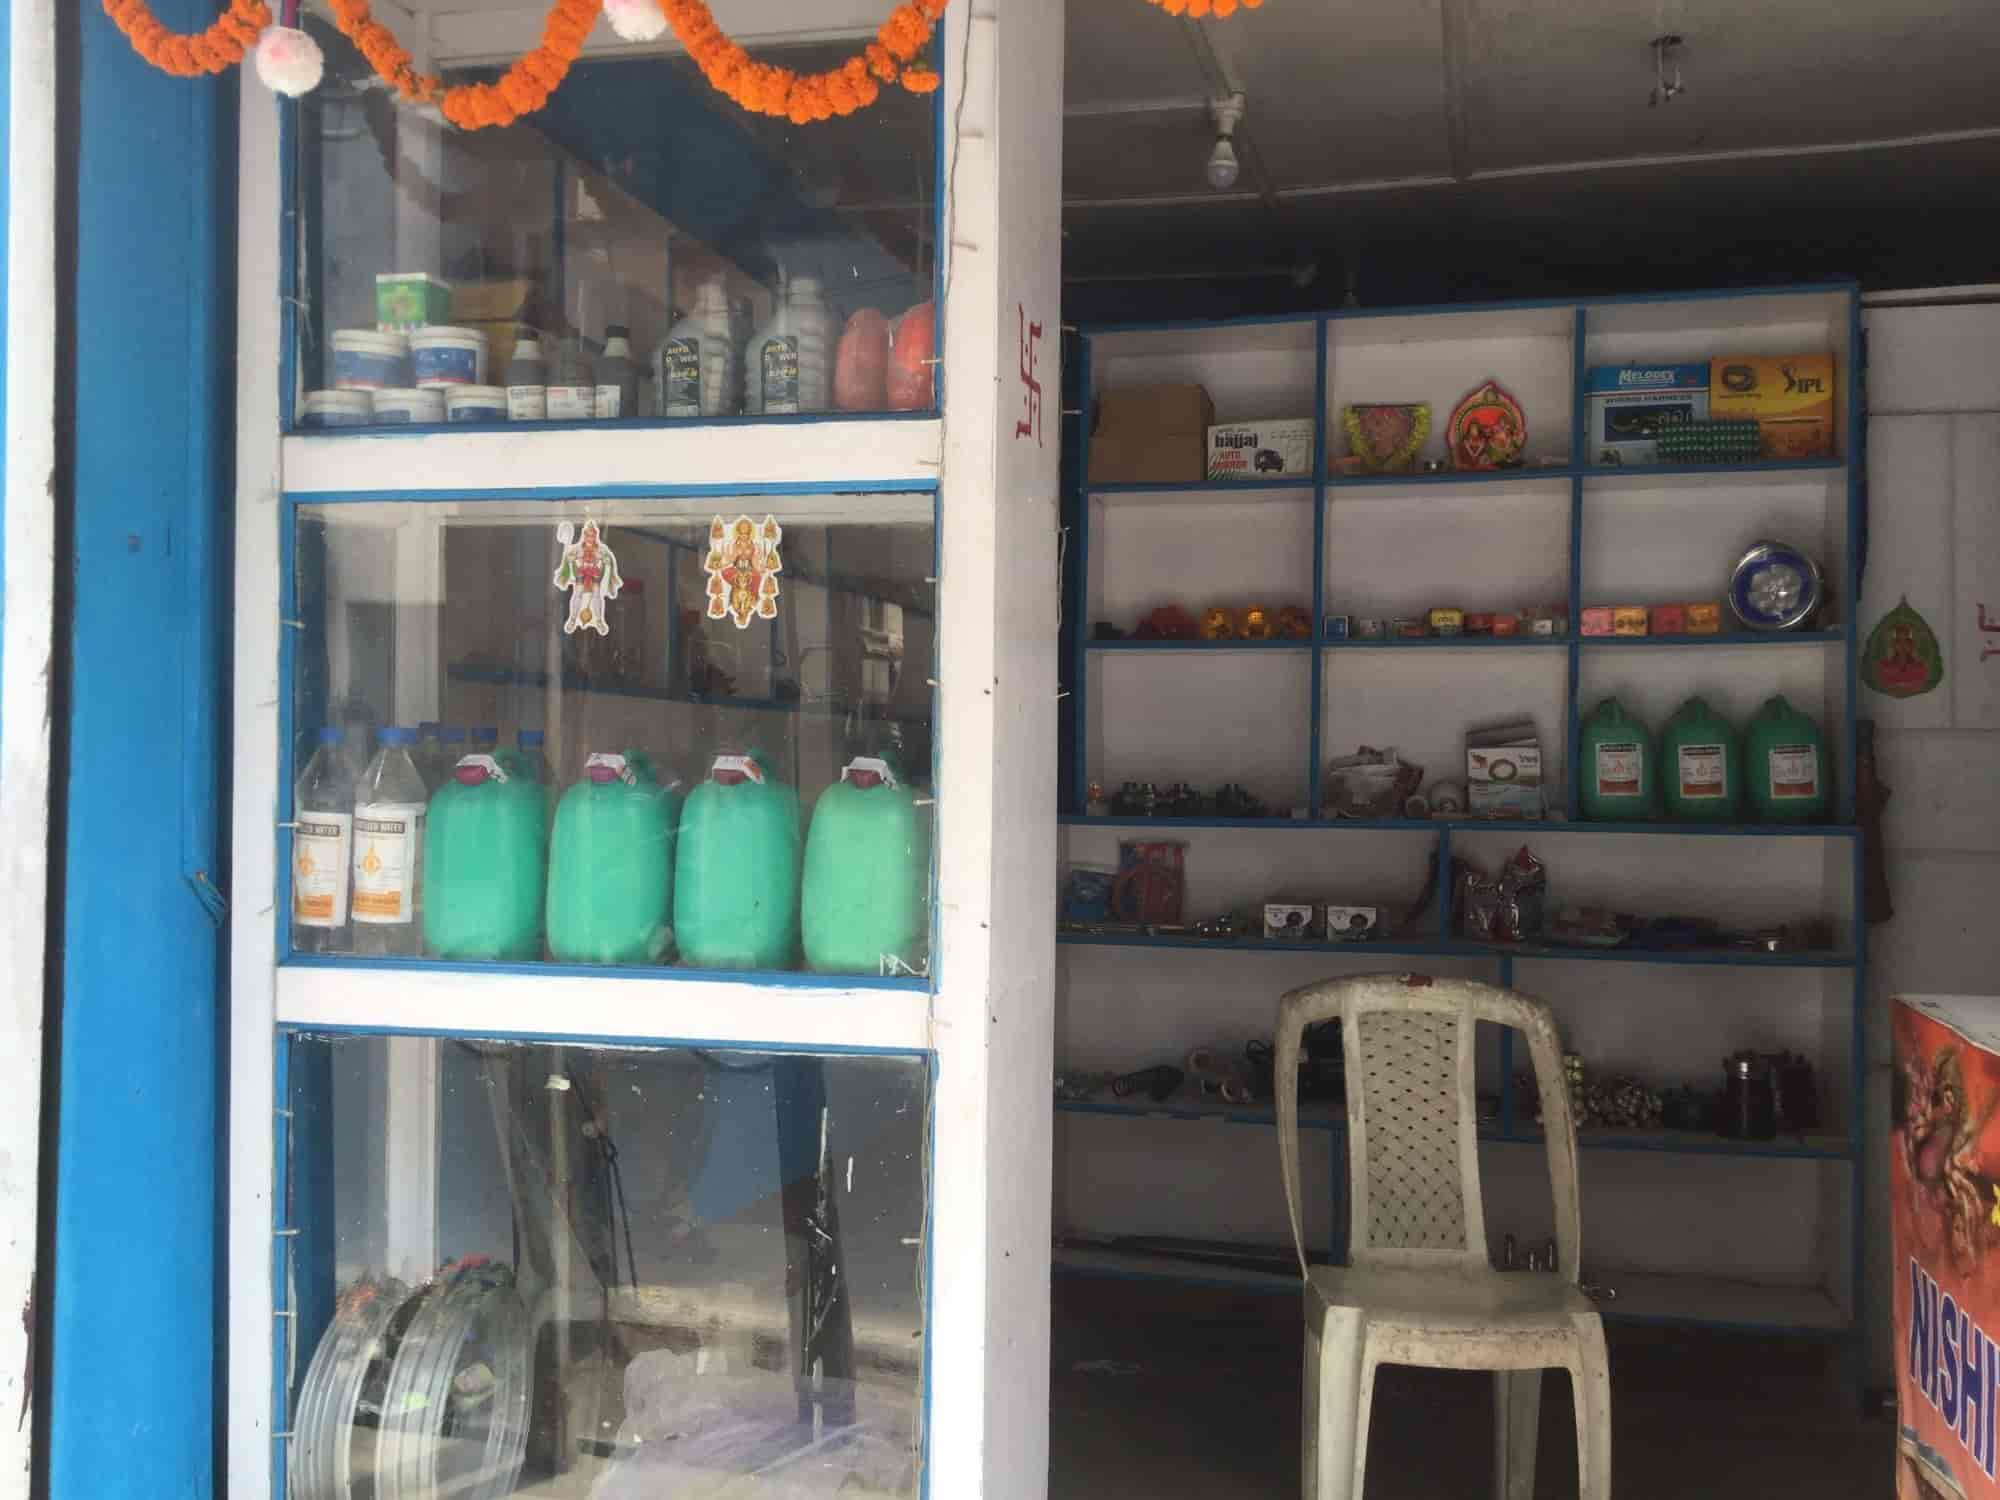 Nishita Toto Spare Parts Photos, Bhaktinagar, Siliguri- Pictures ...